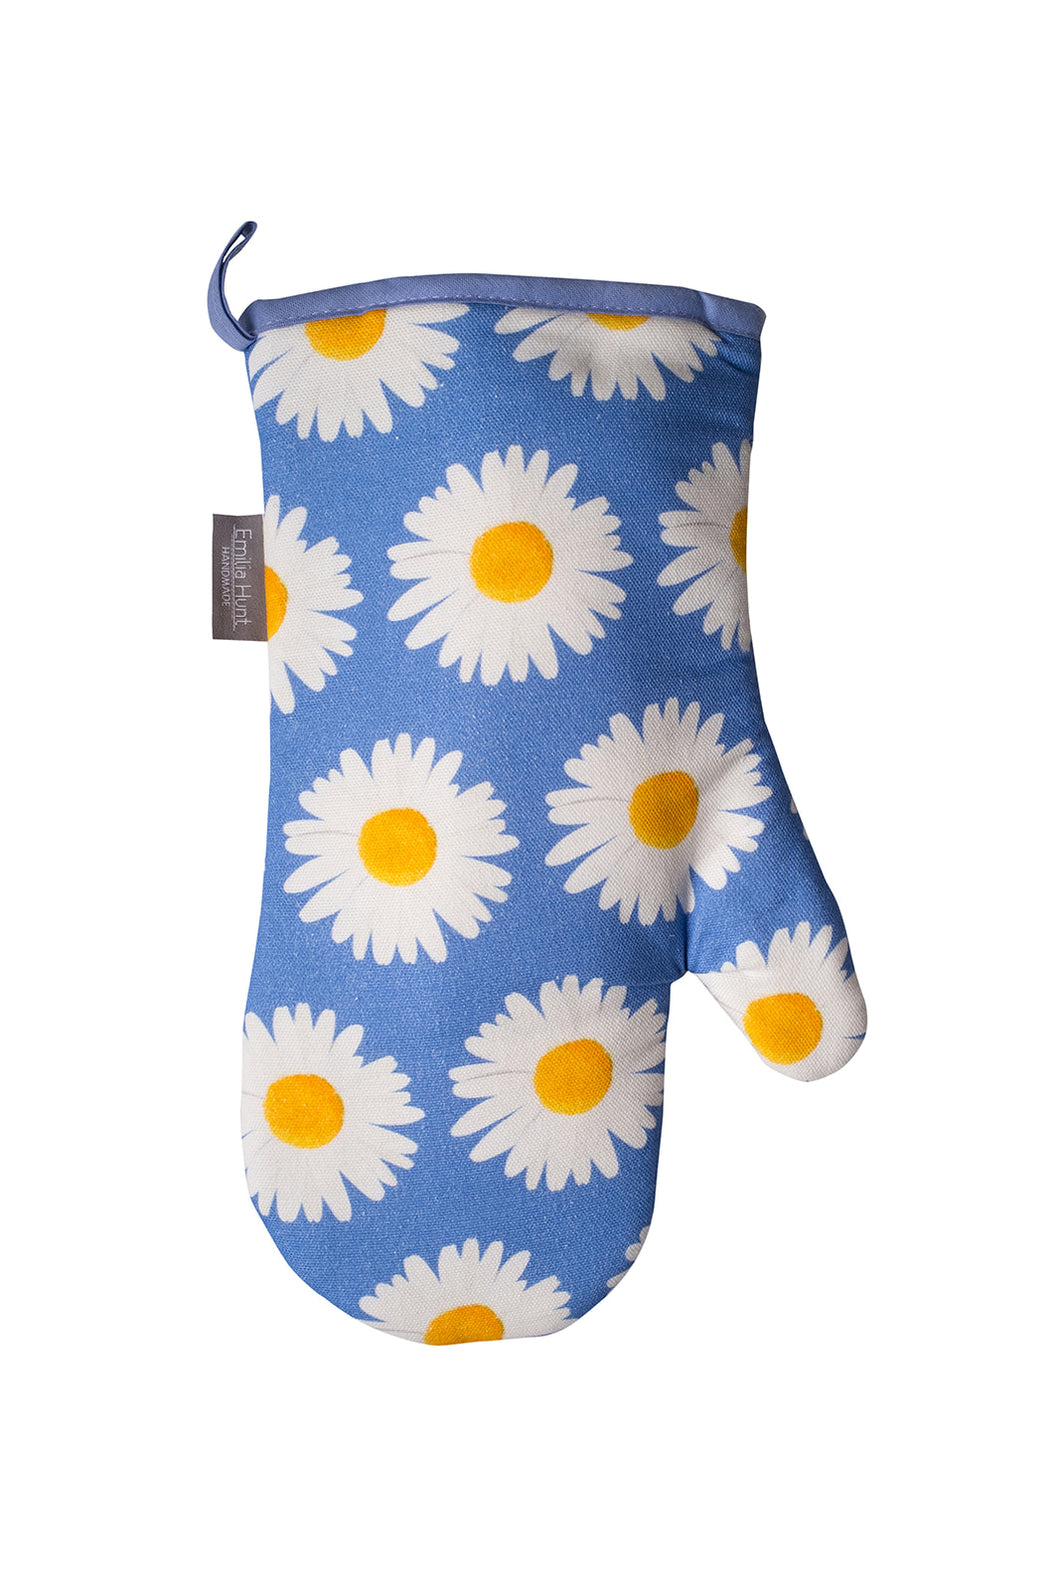 Daisy Single Oven Mitt